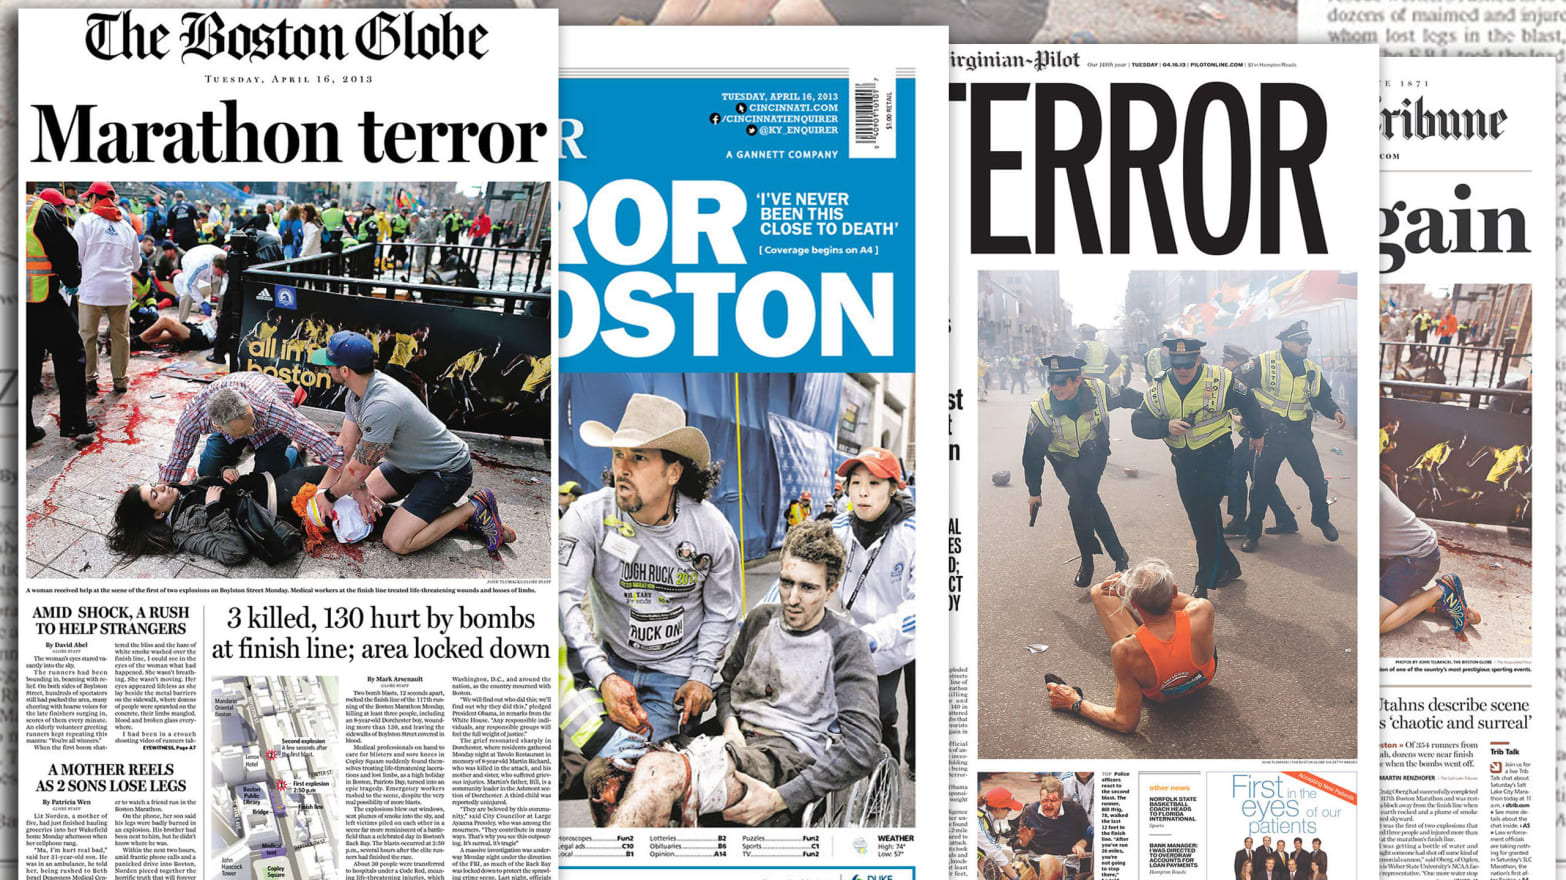 The Front Pages After the Boston Marathon Bombing